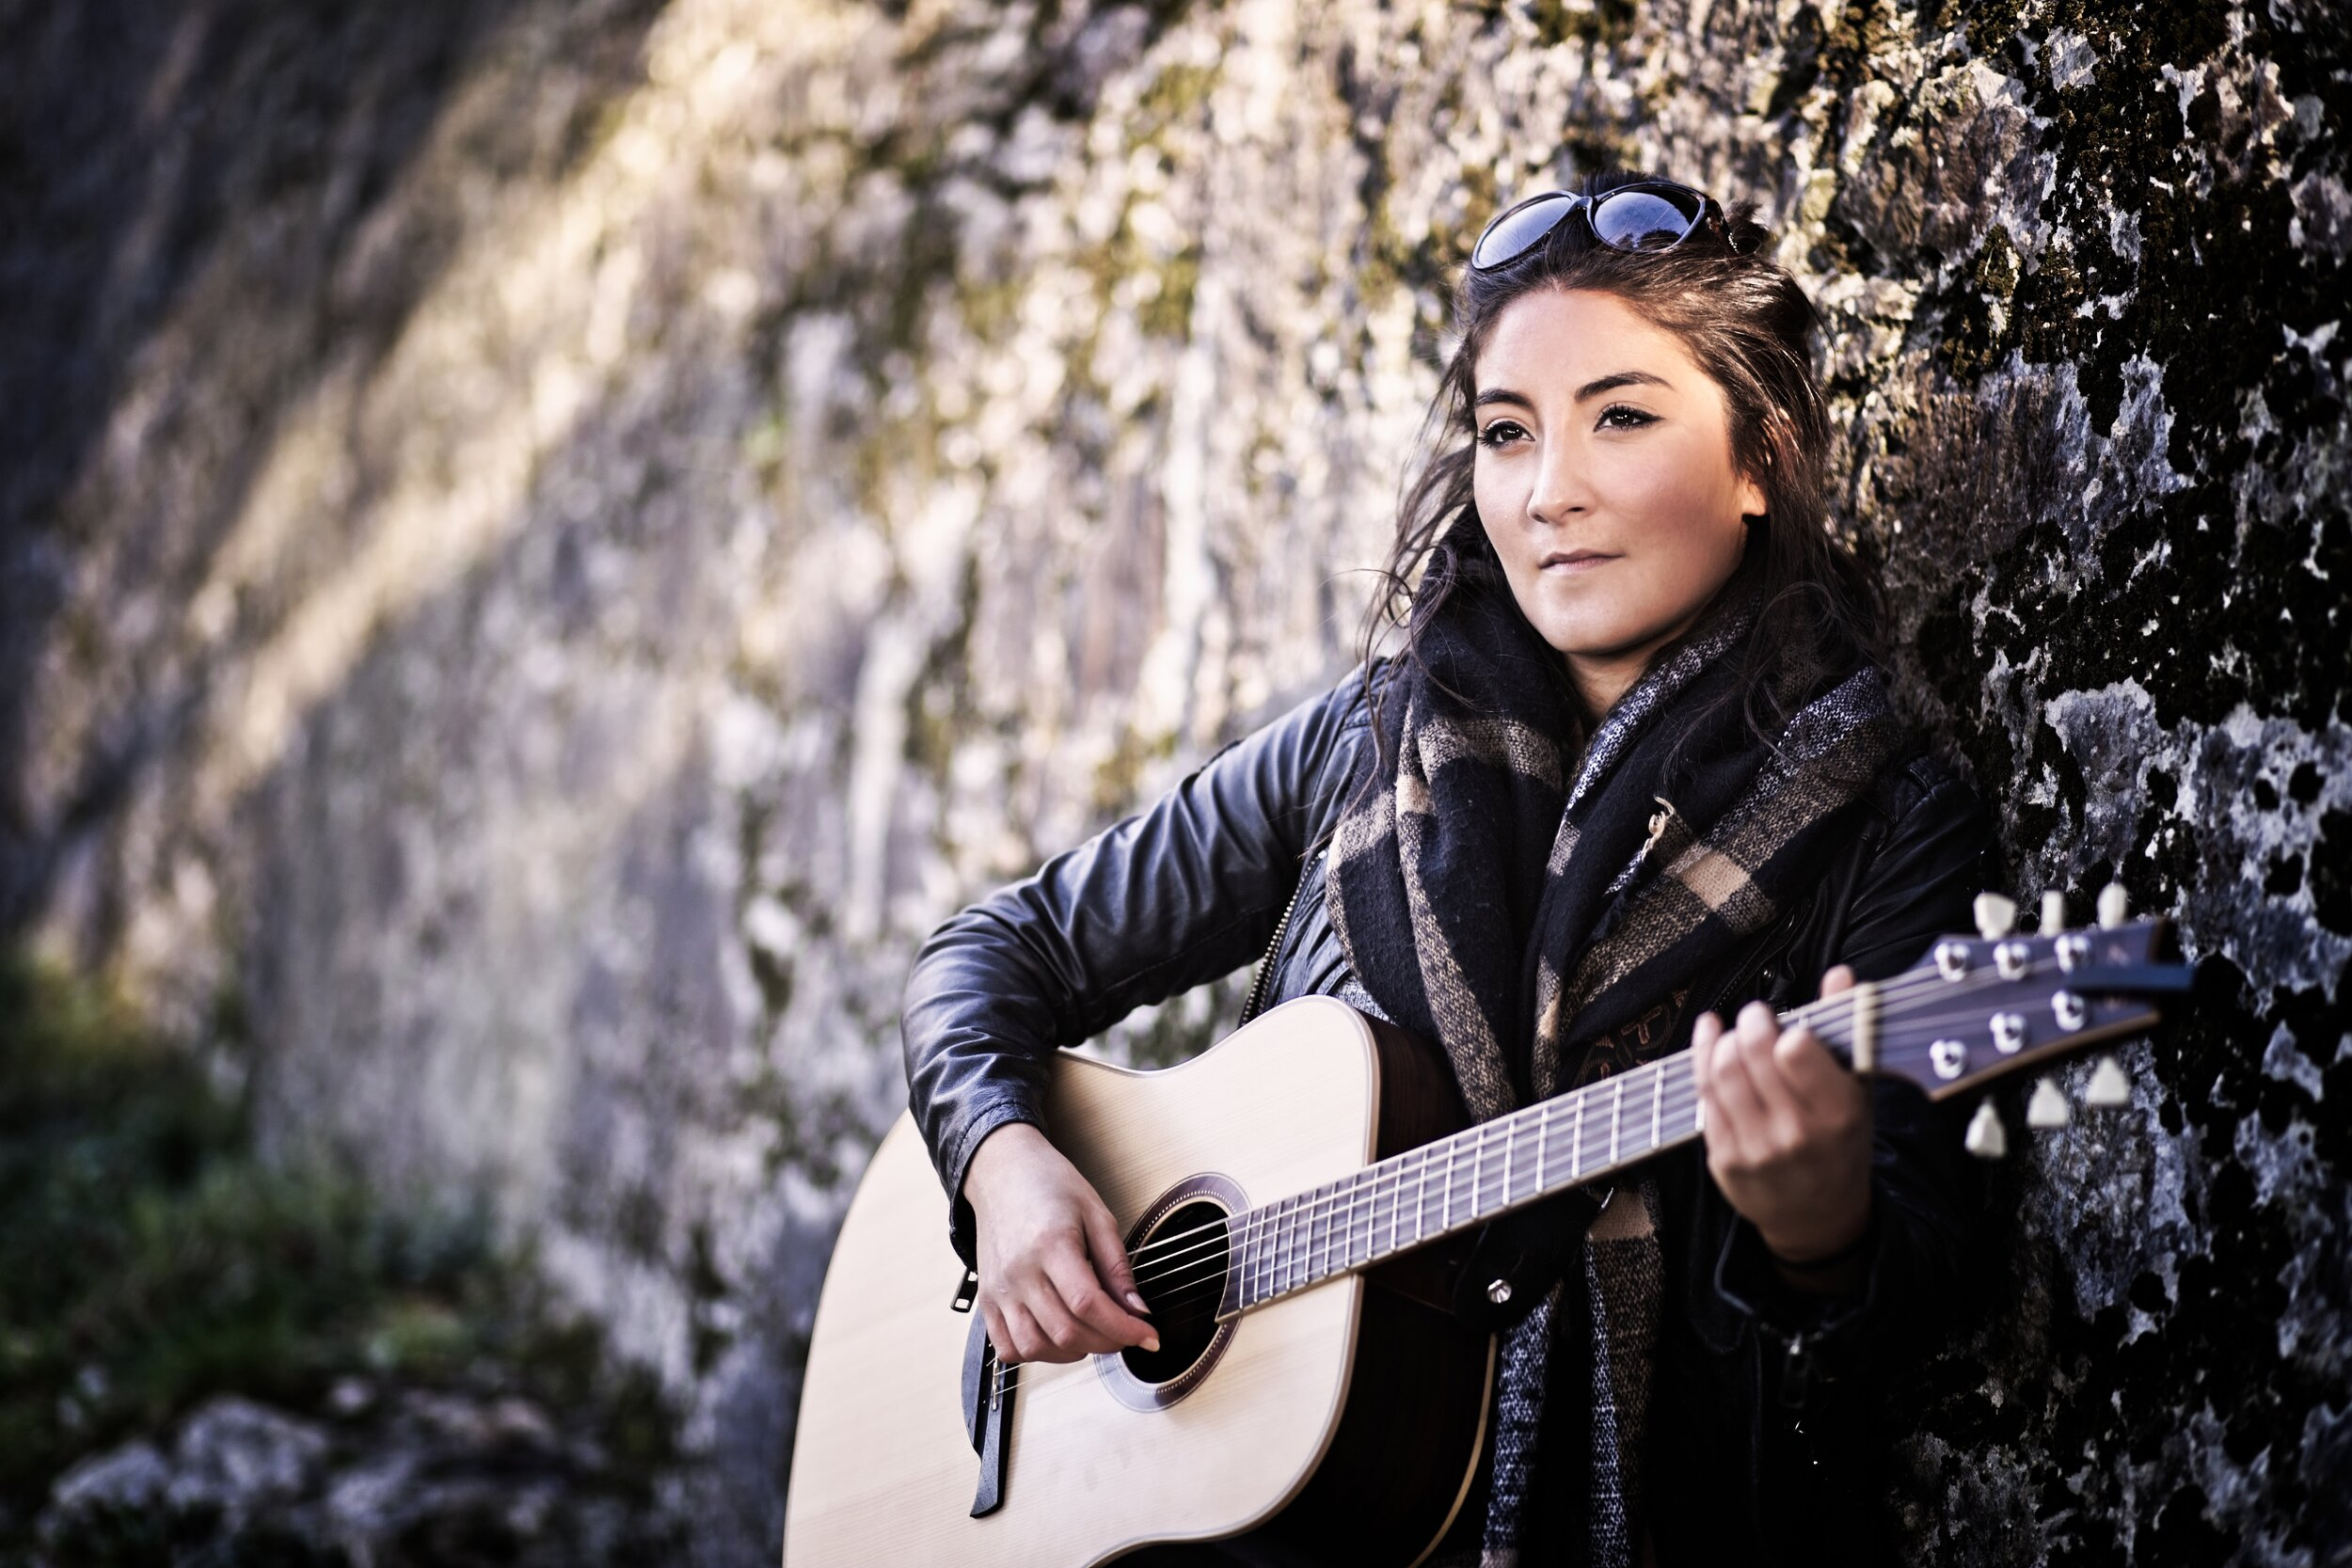 Pari performs beautiful acoustic sets suitable for a range of venues and occasions